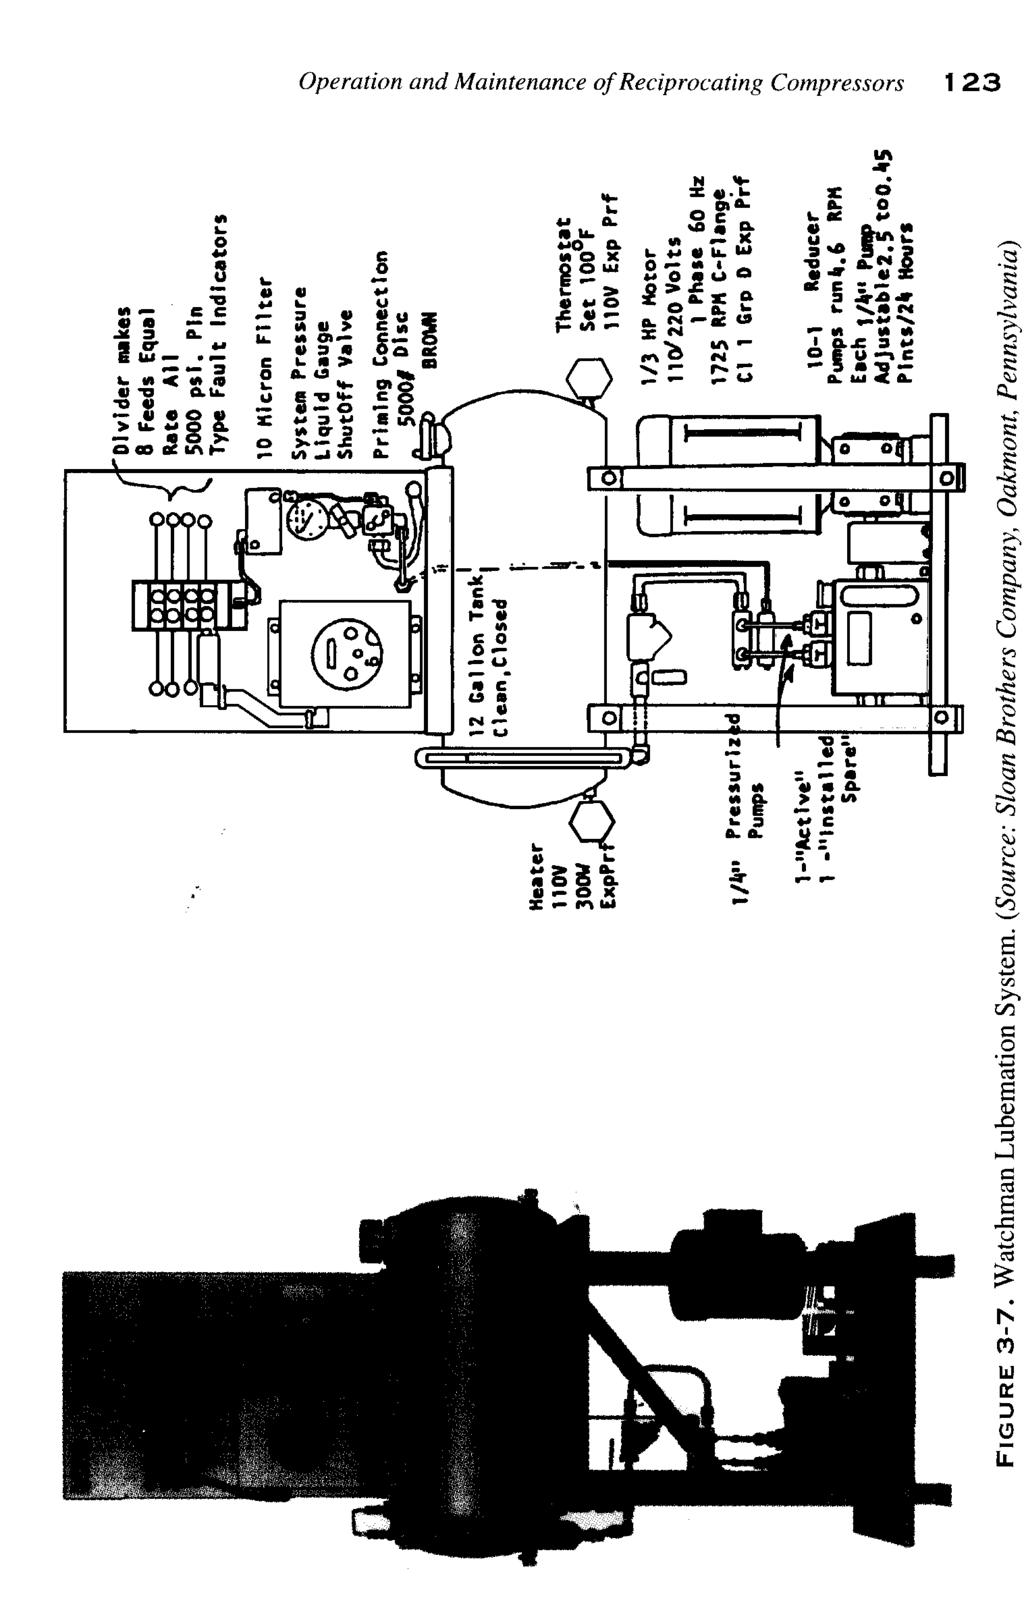 Contents 2 Design And Materials For Reciprocating Compressor Figure 3 The Vital Electric Components Of Flash Circuitry 122 Compressors Operation Maintenance Divider Block These Systems Are Equipped With Main